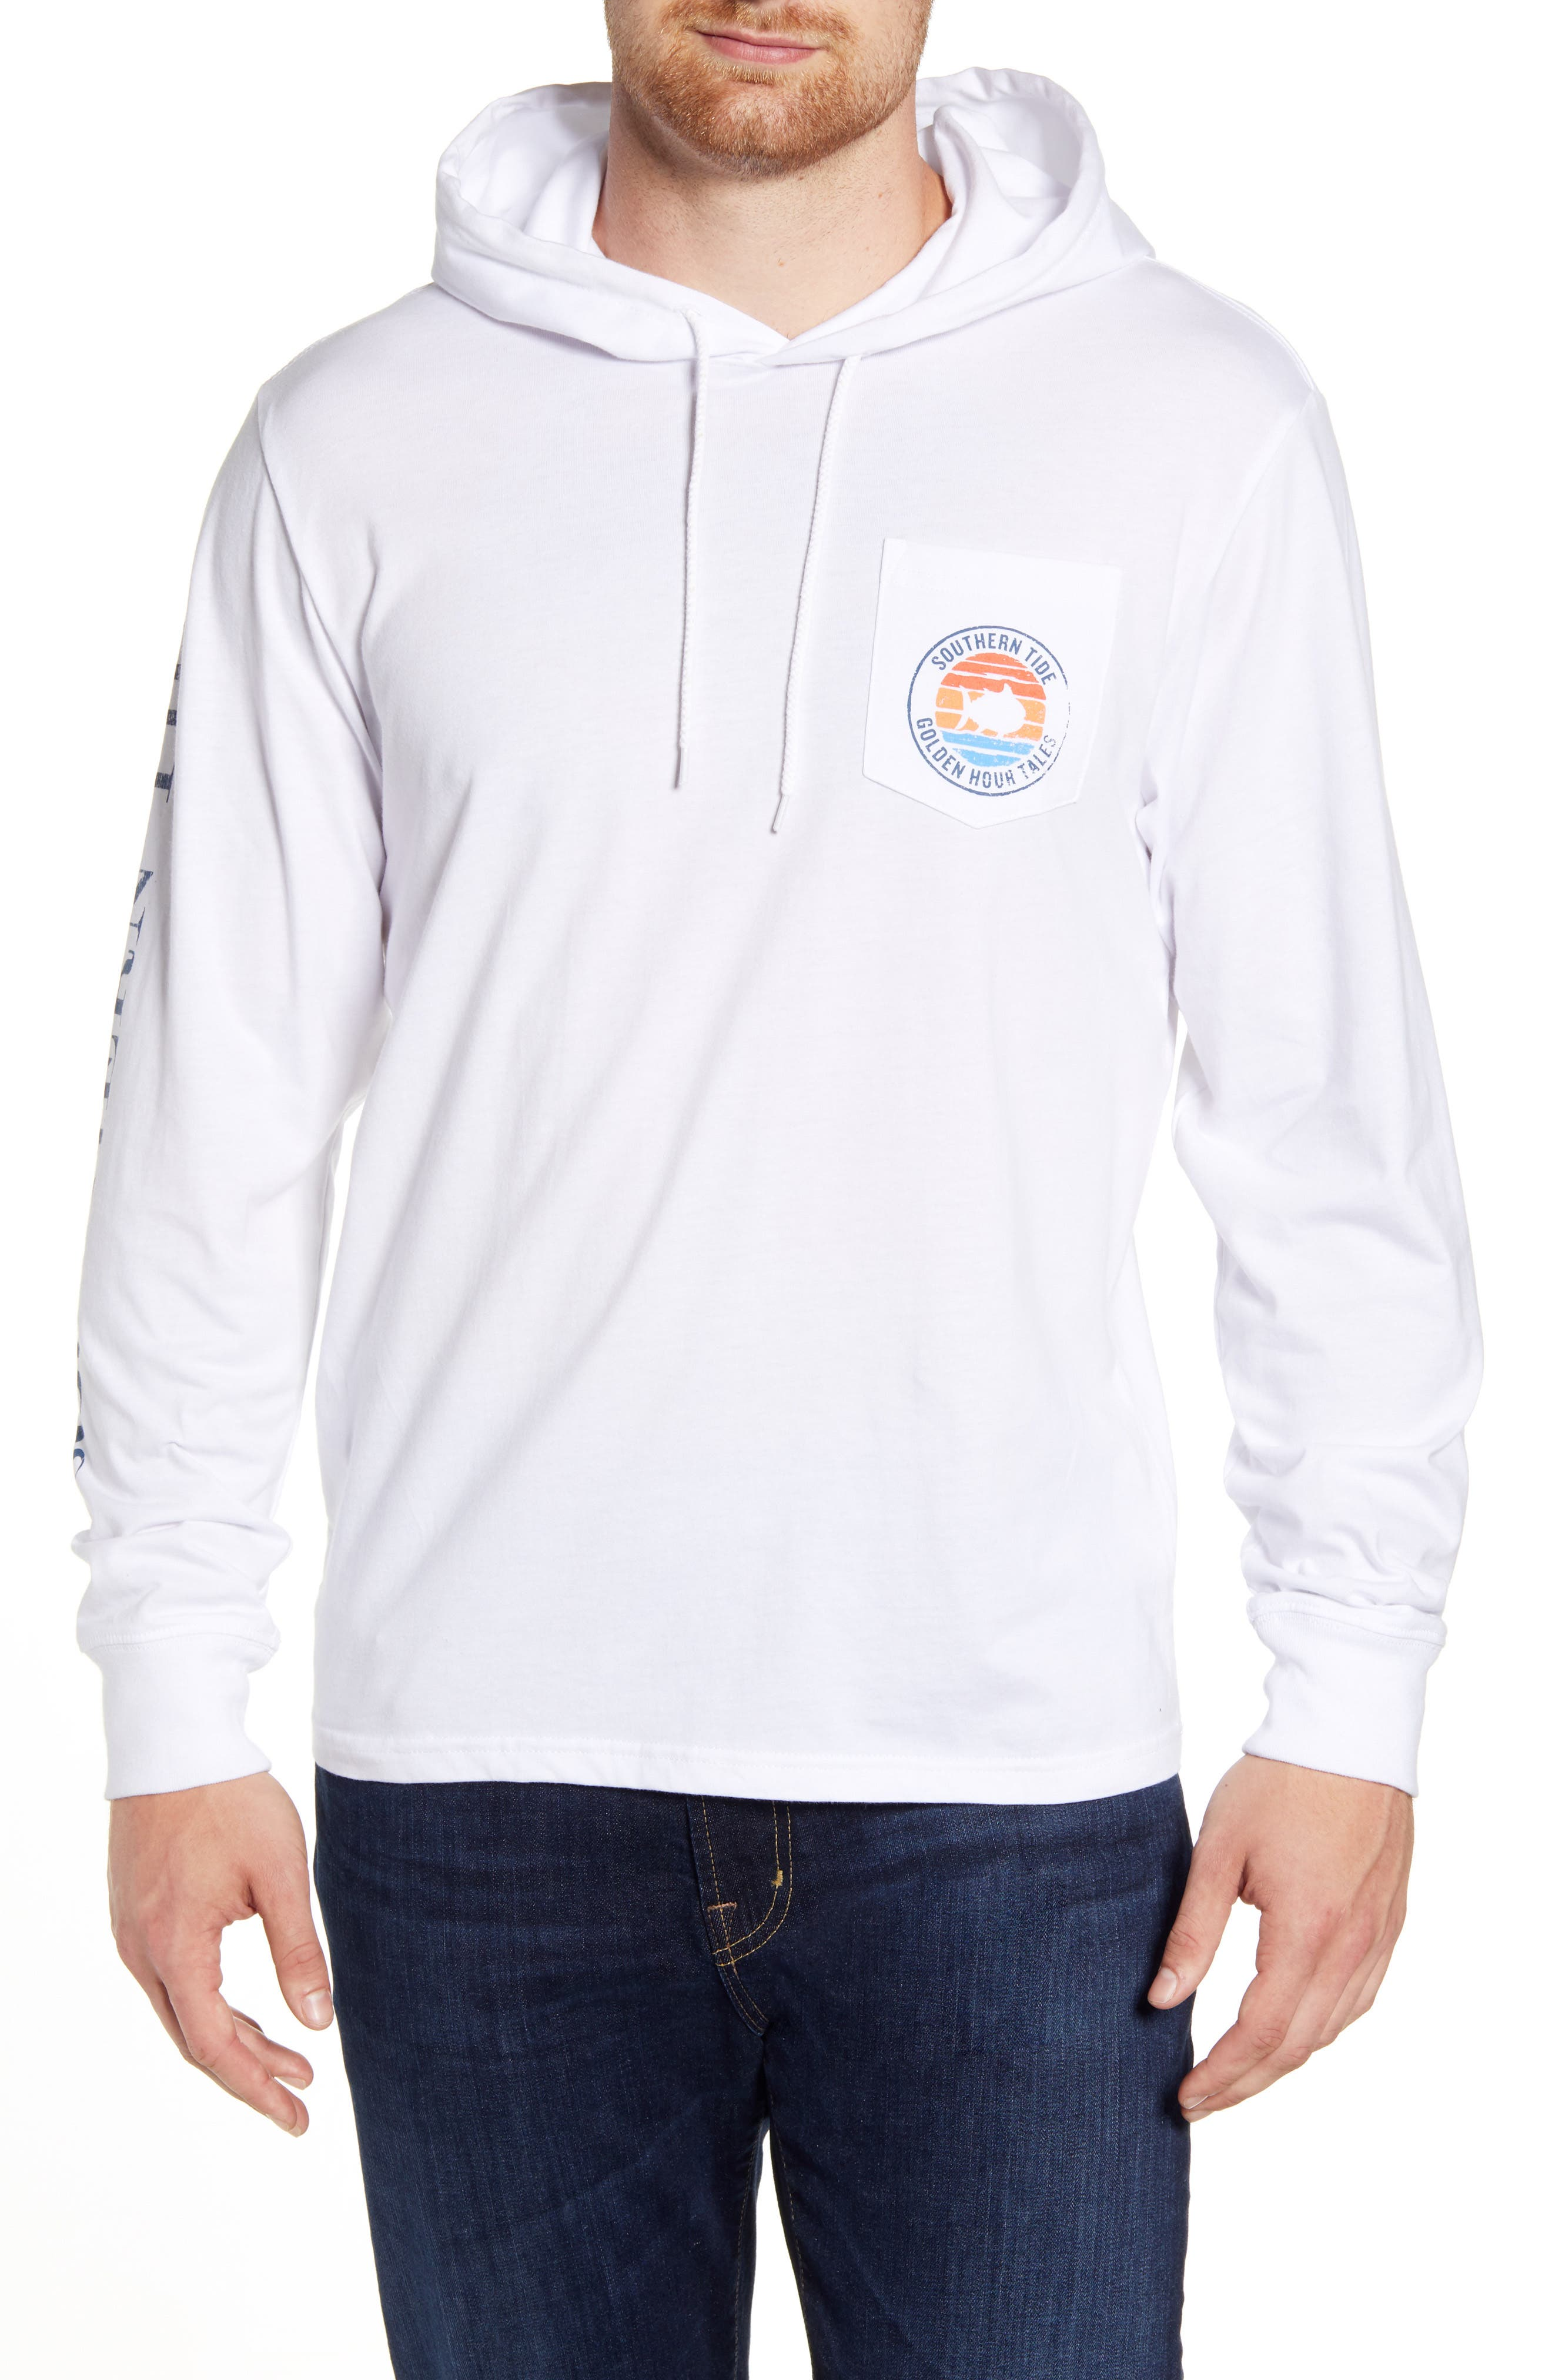 Southern Tide Golden Hour Tales Pocket Hoodie, White